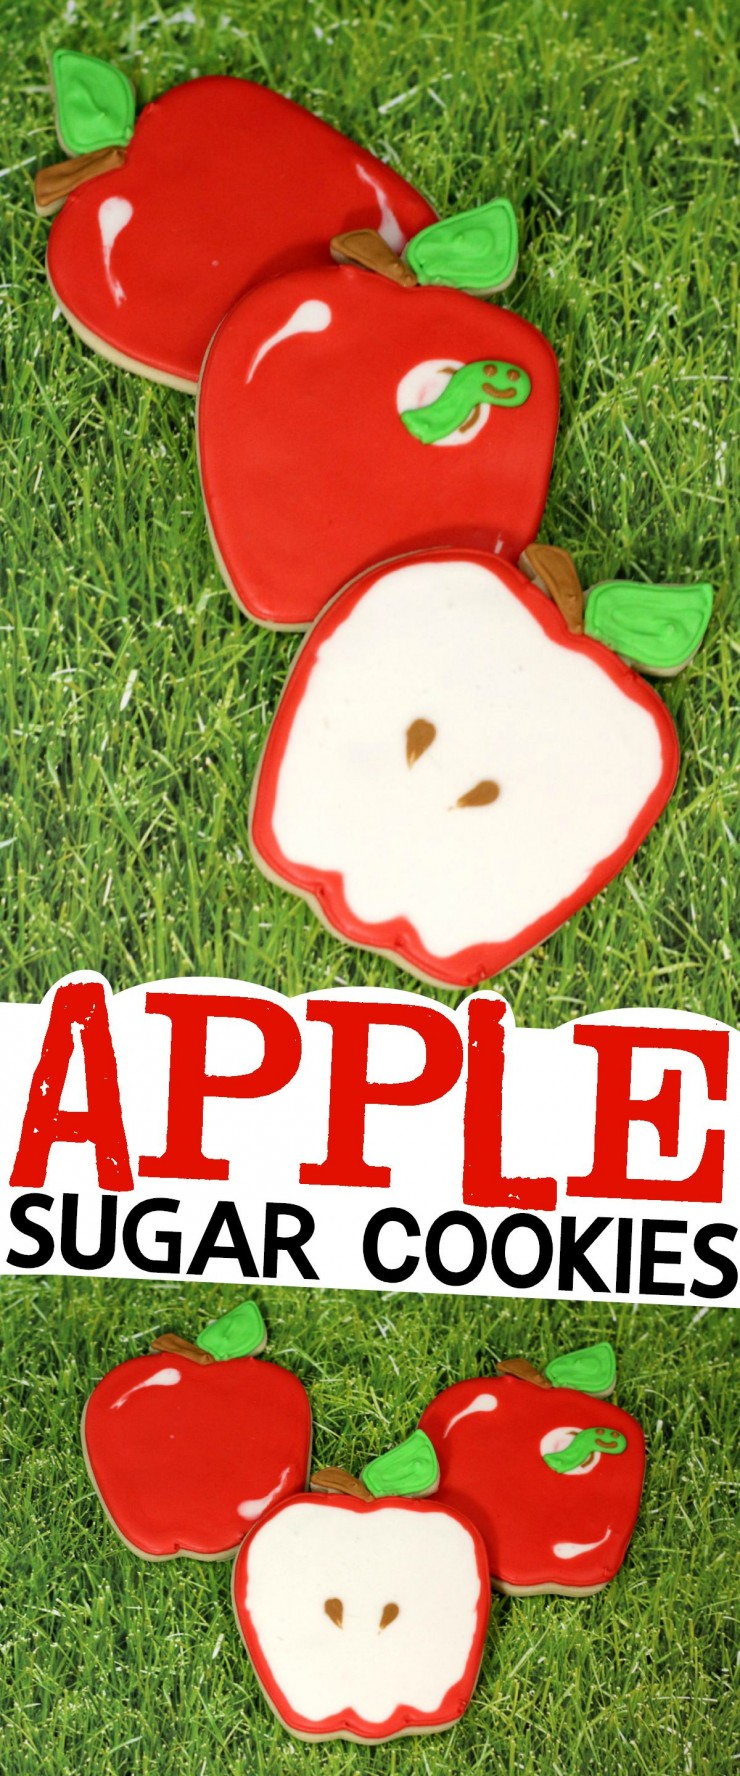 How to decorate these adorable Apple Sugar Cookies + recipe for cookies and icing!